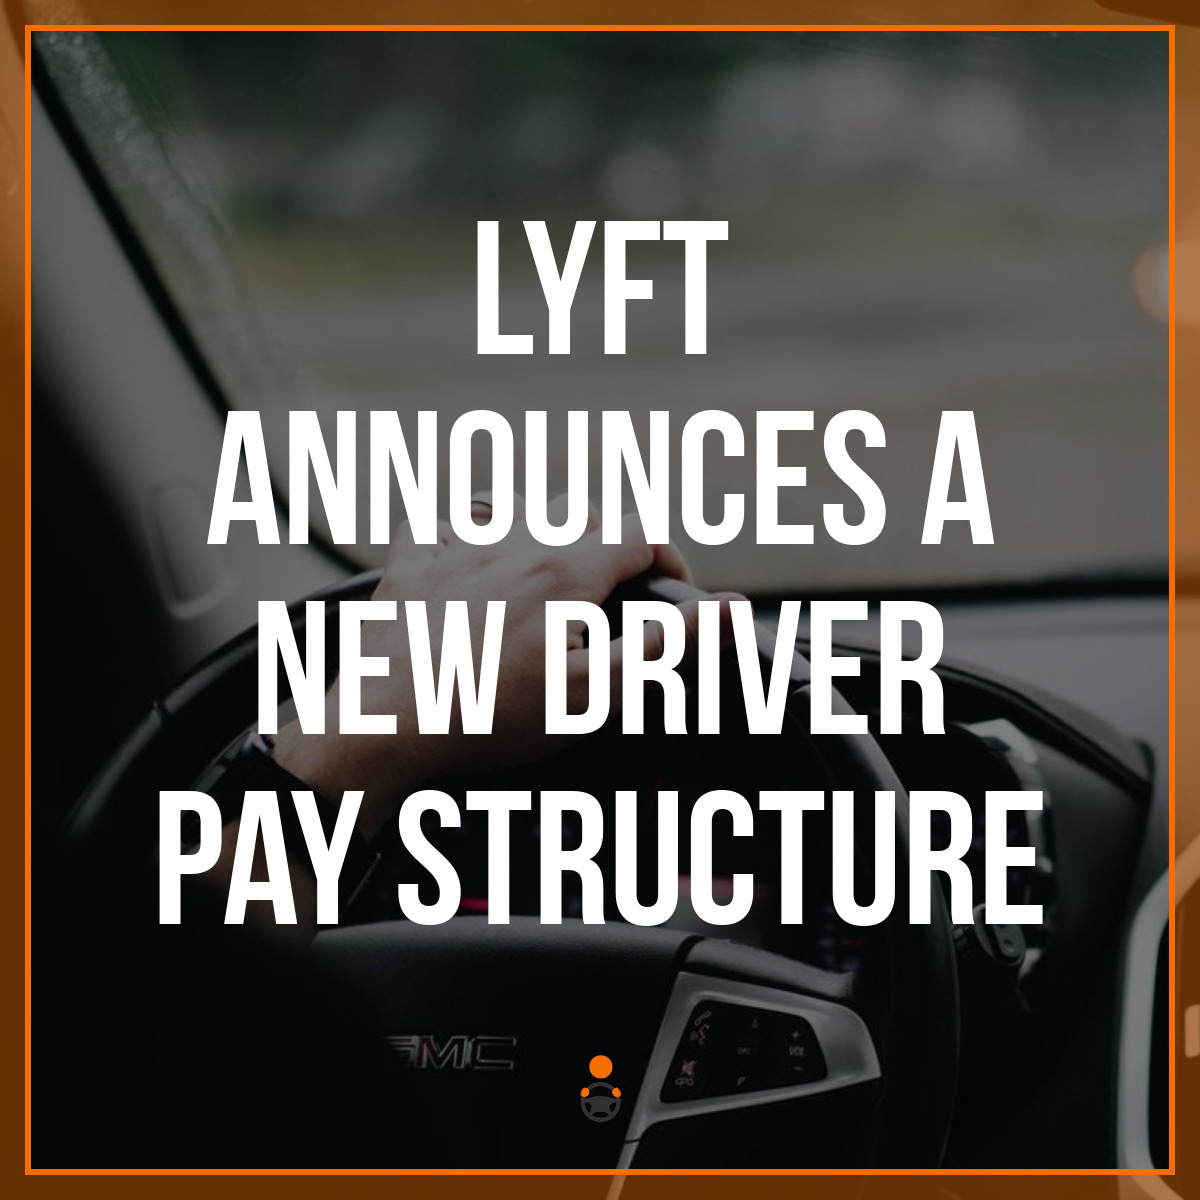 Get Paid for Pickup Time – Lyft Announces a New Driver Pay Structure